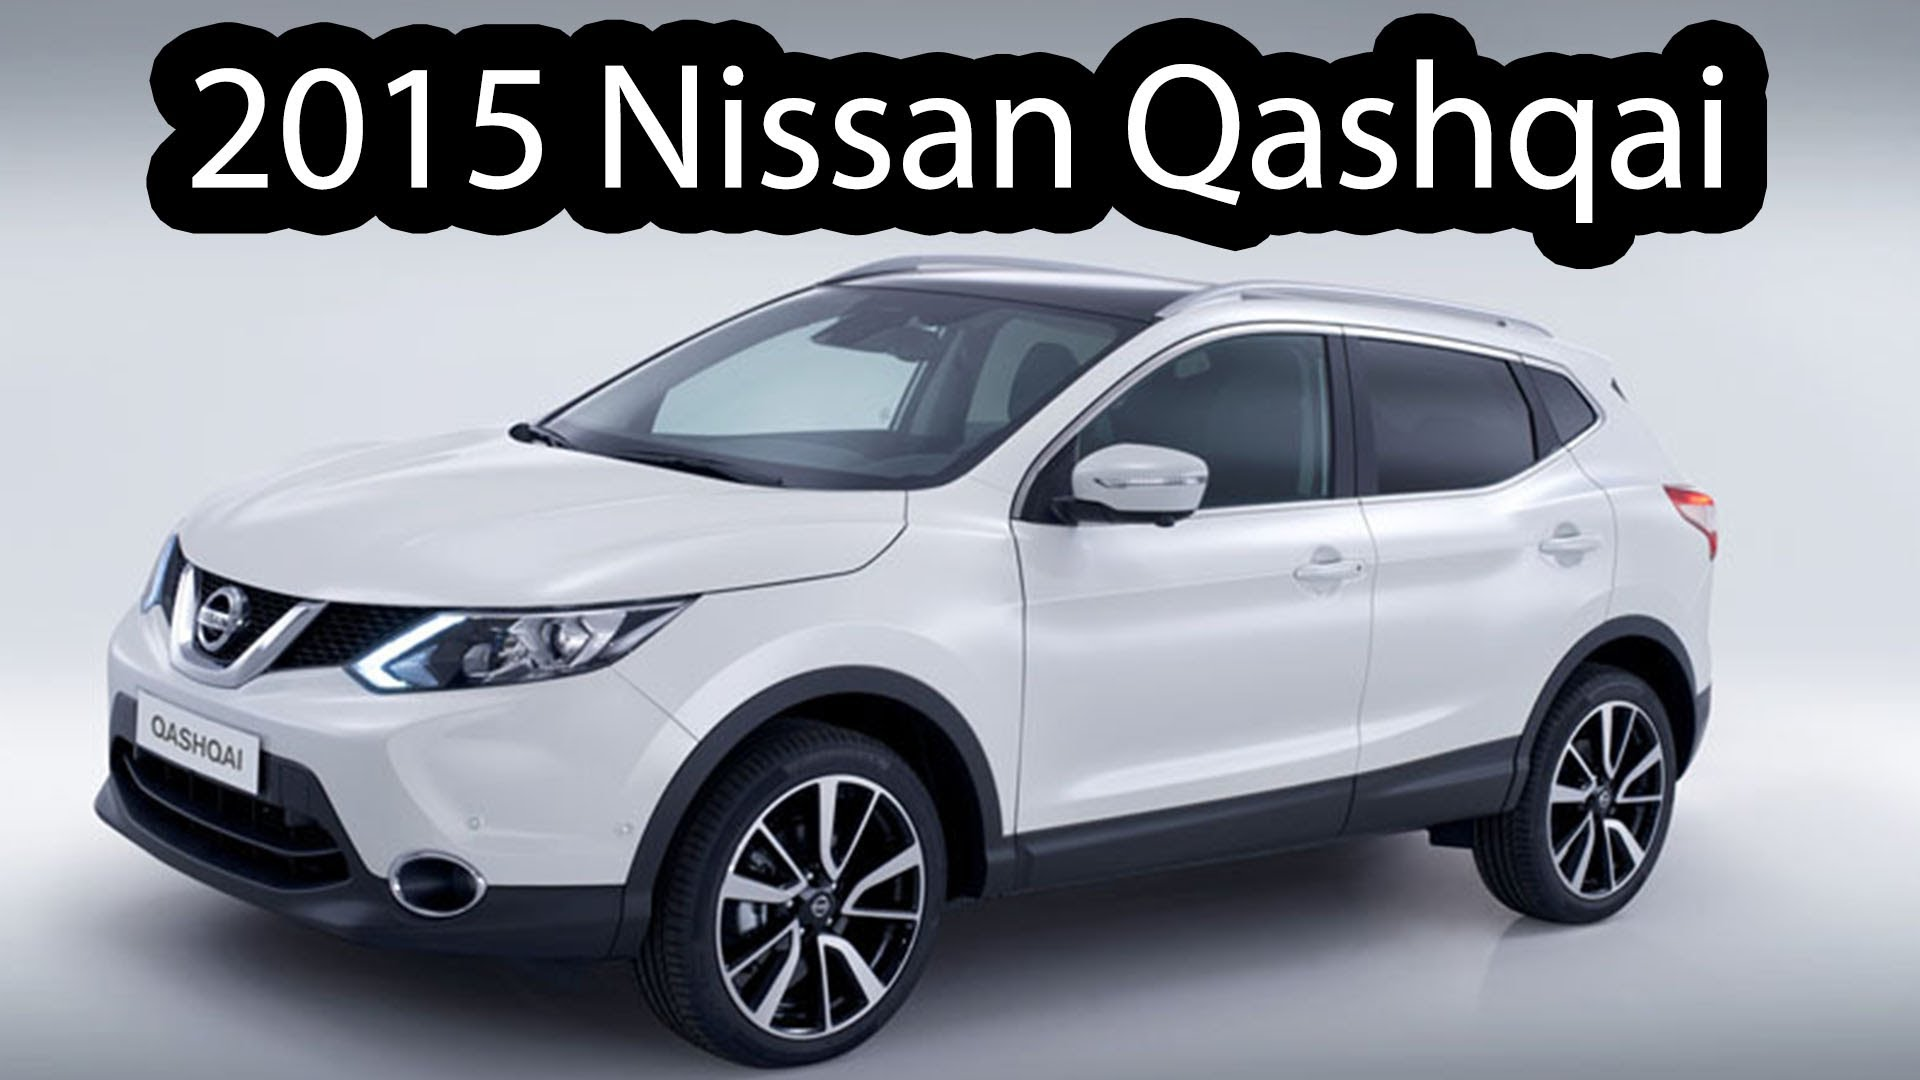 2015 nissan qashqai 2 pictures information and specs. Black Bedroom Furniture Sets. Home Design Ideas